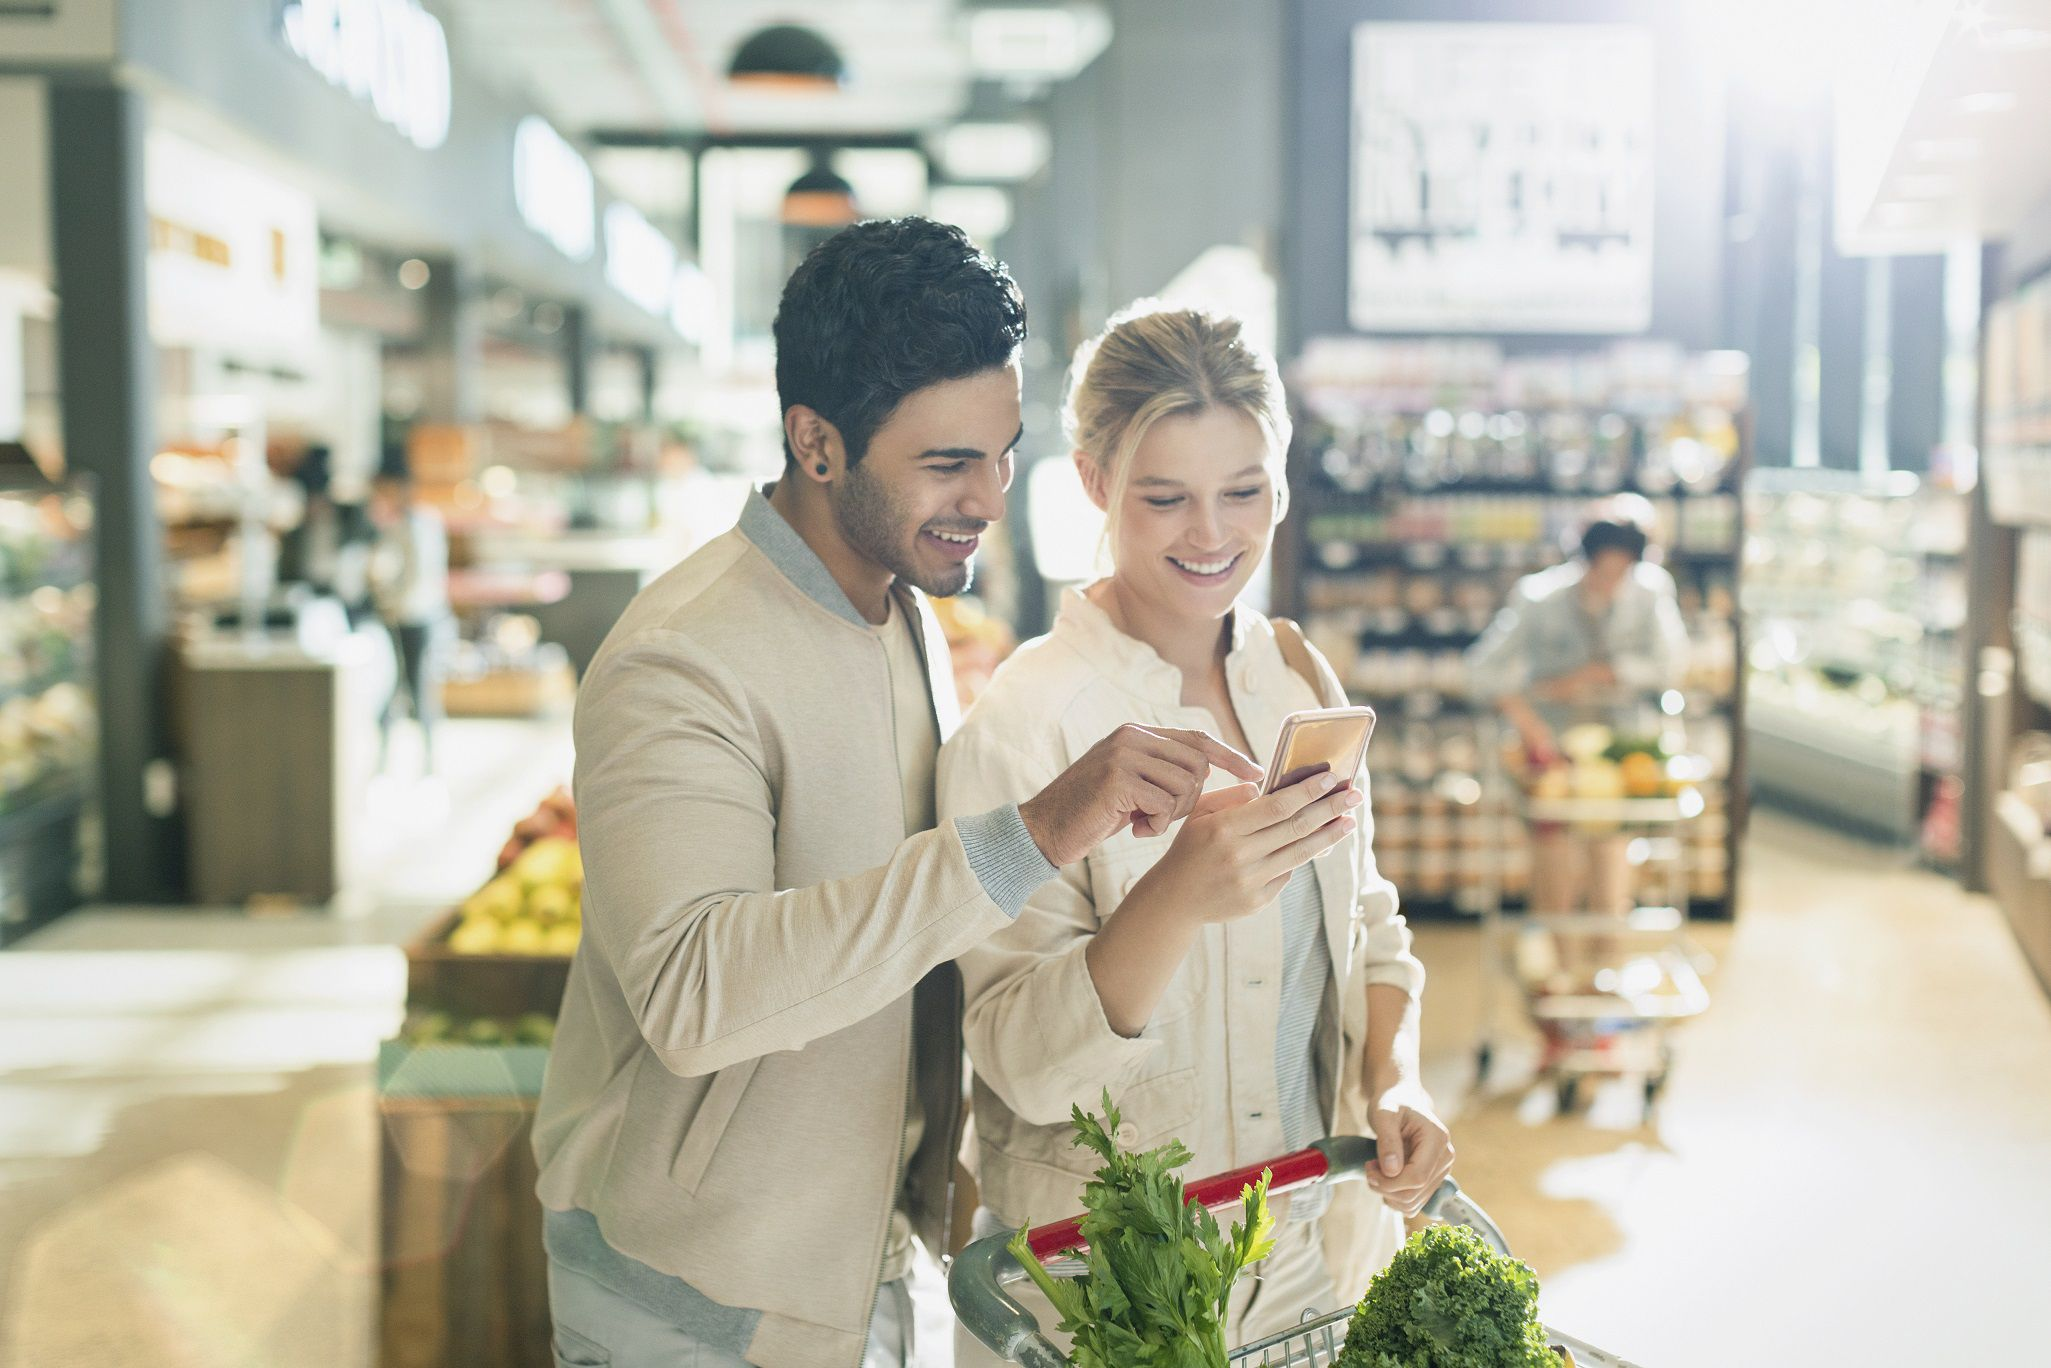 Buy Online Where Groceries